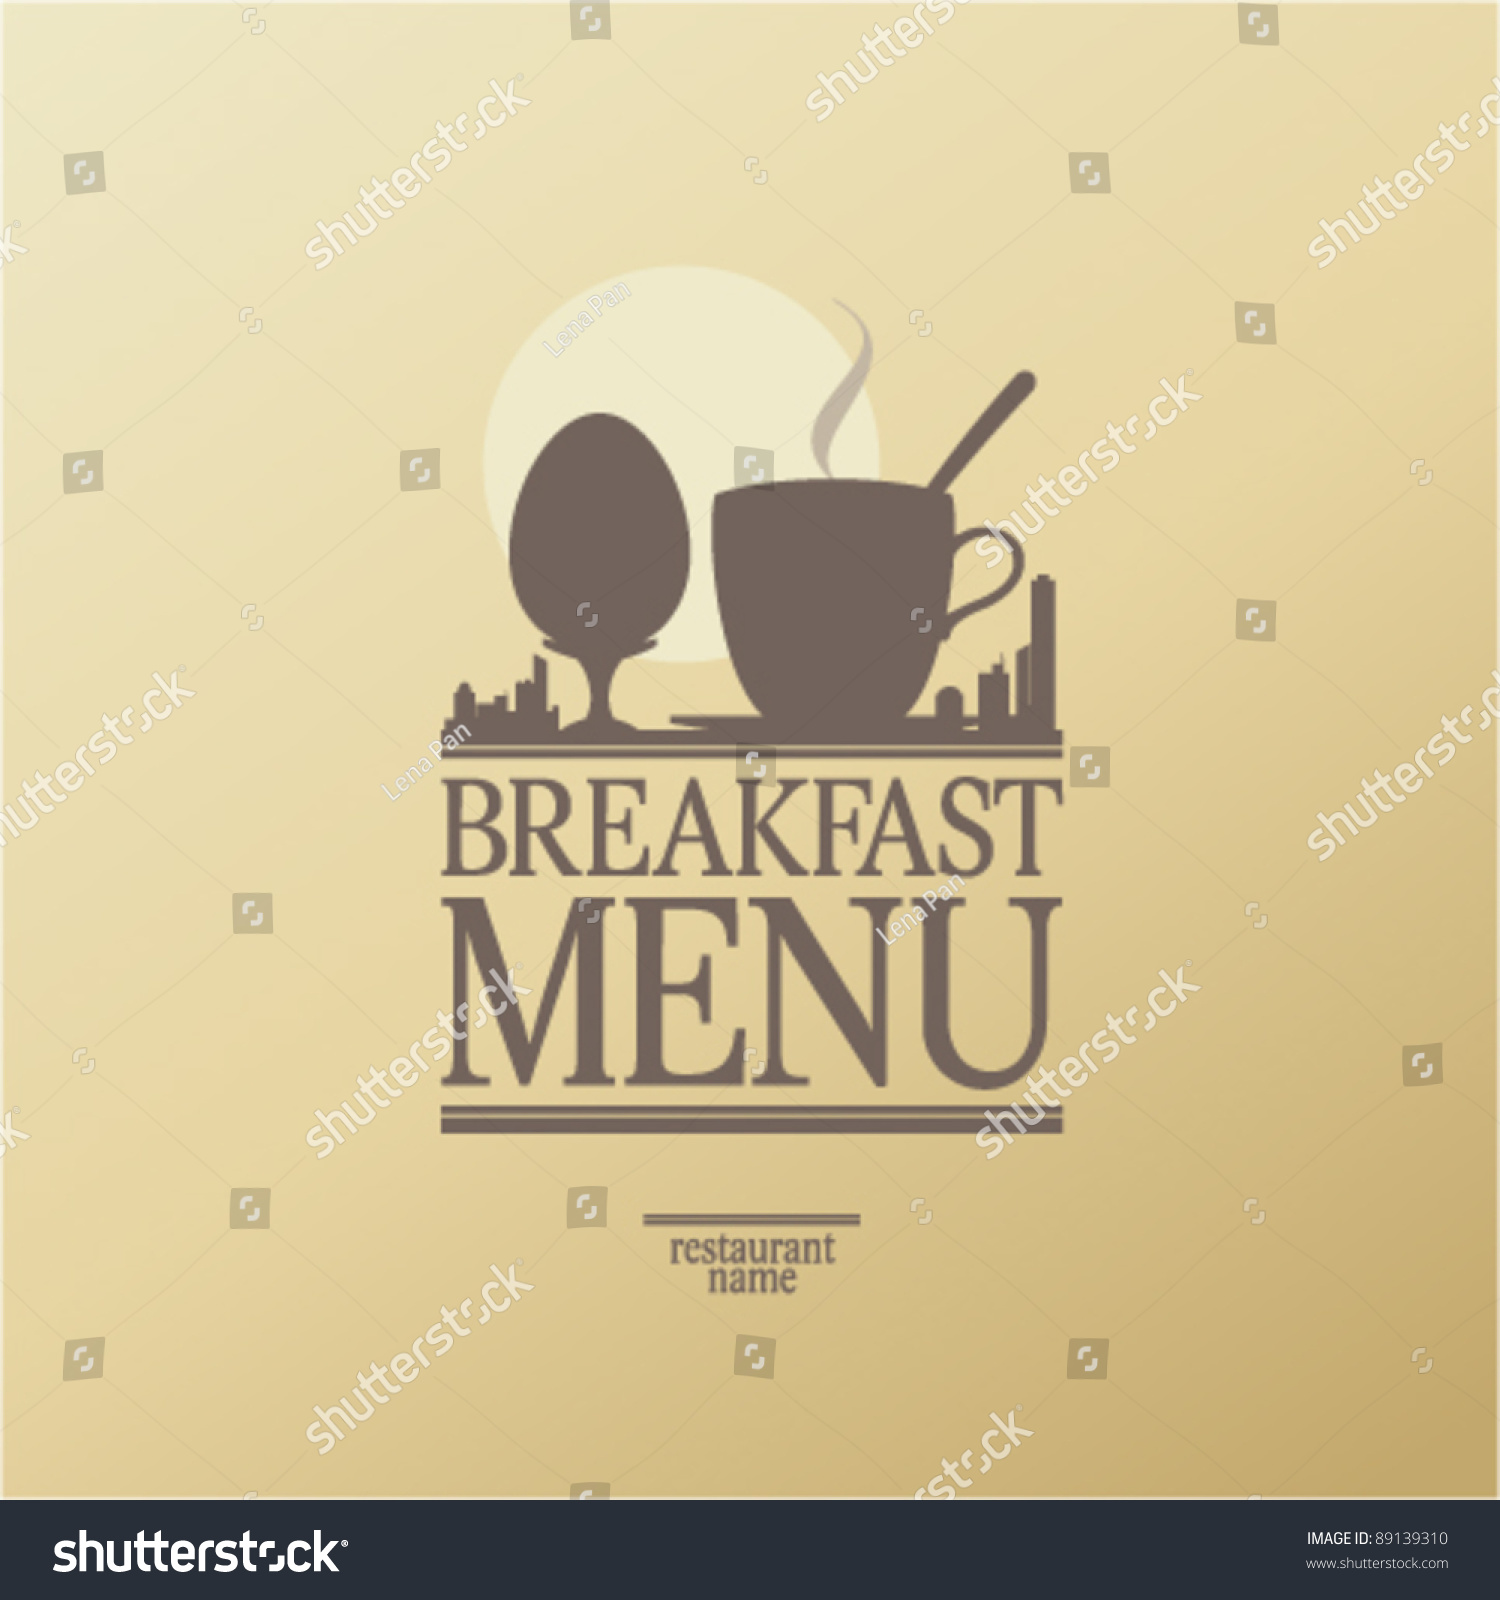 Breakfast Menu Card Design Template Vector 89139310 – Breakfast Menu Template